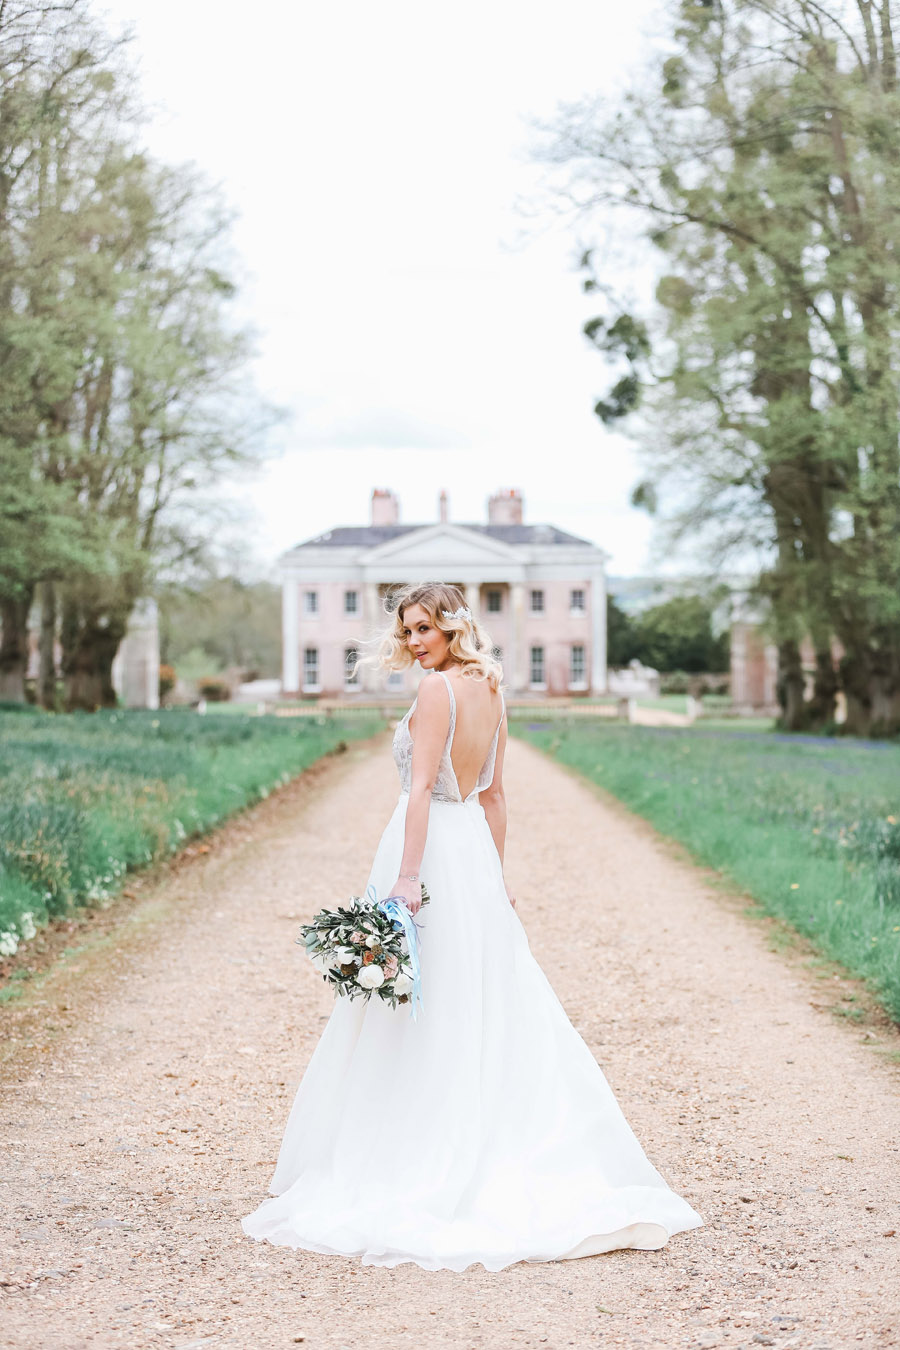 Romantic wedding ideas from Hale Park, photo by Charlotte Wise Photography (51)